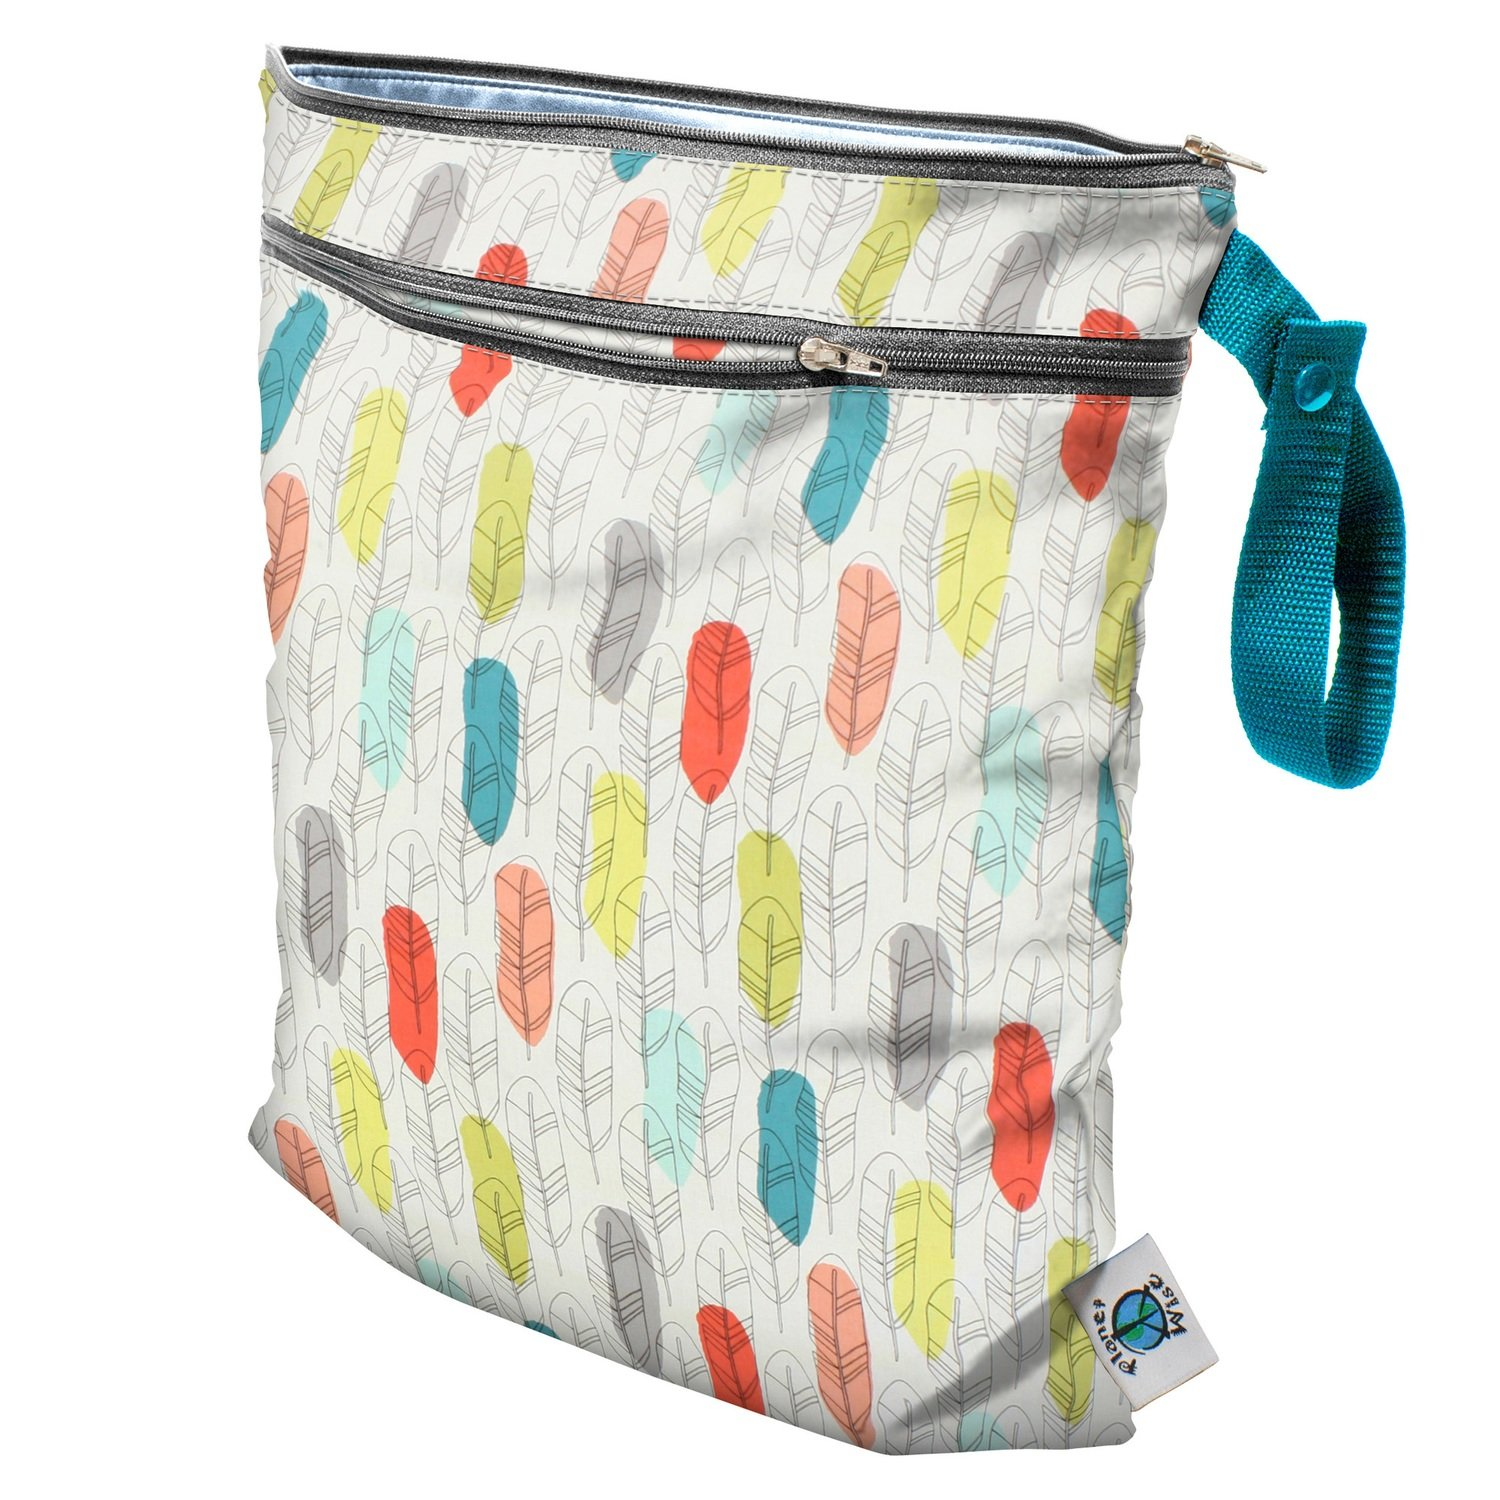 Wet/Dry Bag by Planetwise